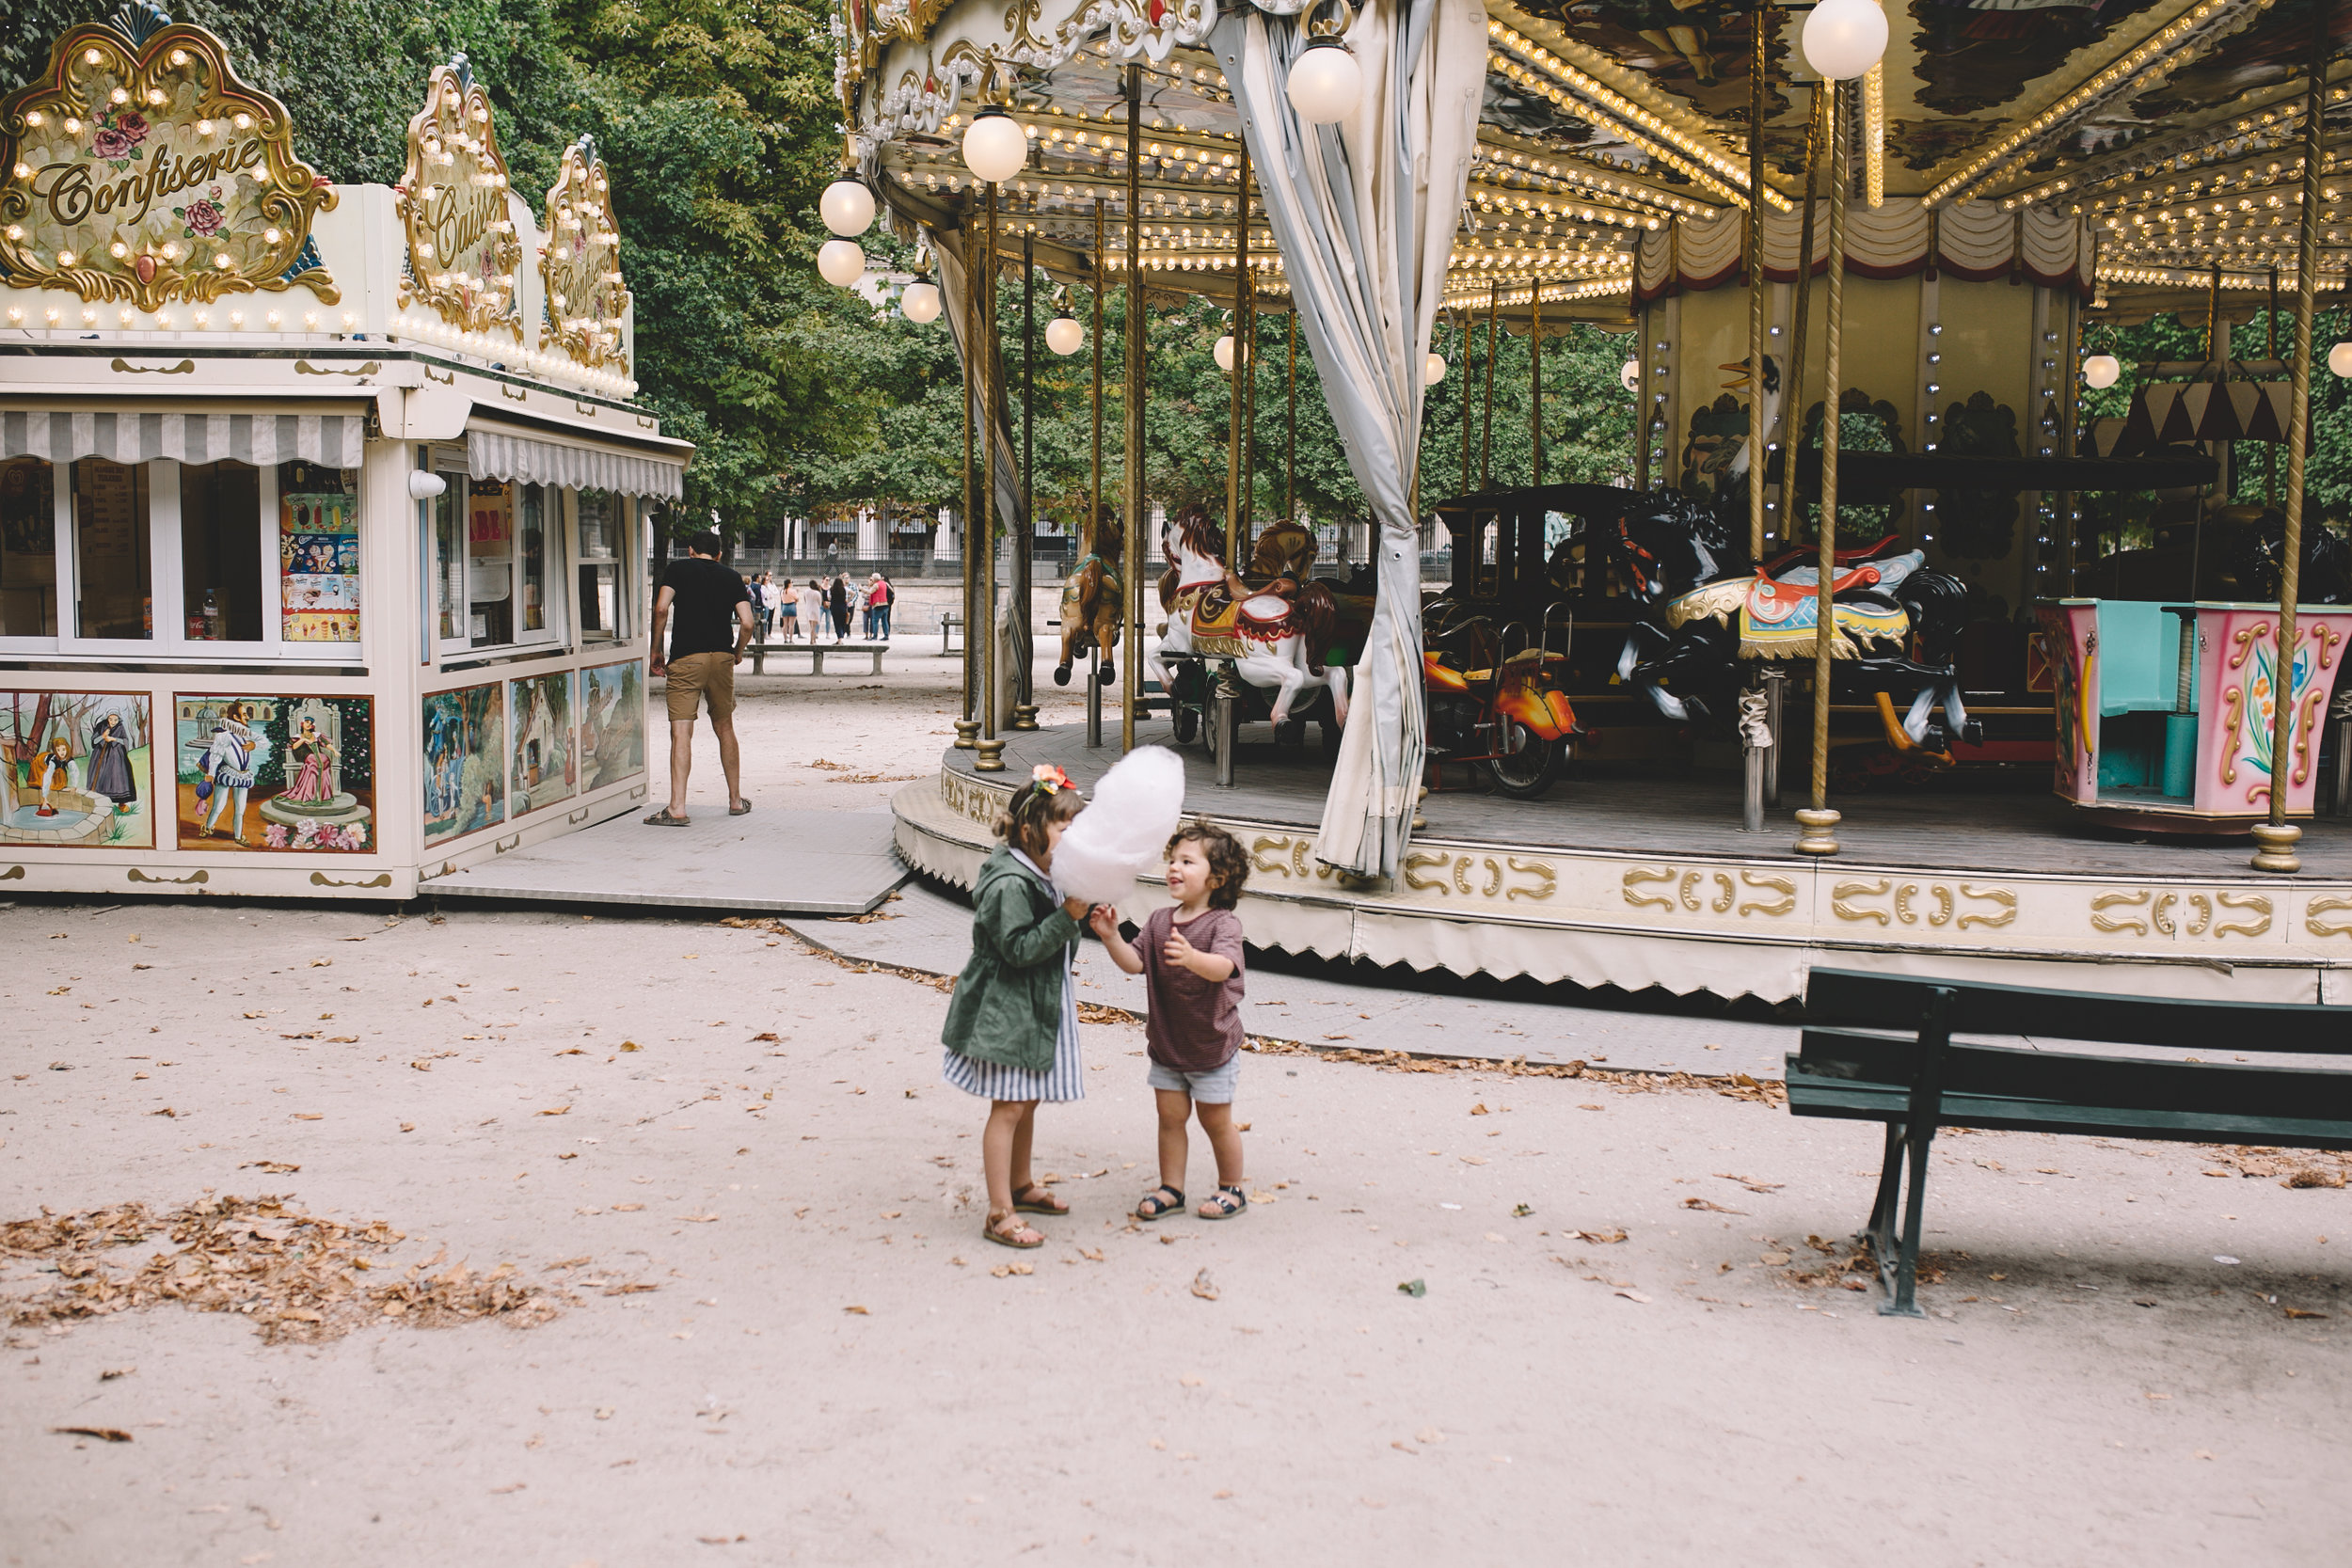 Jardin des Tuileries Paris France Carousel  (2 of 7).jpg